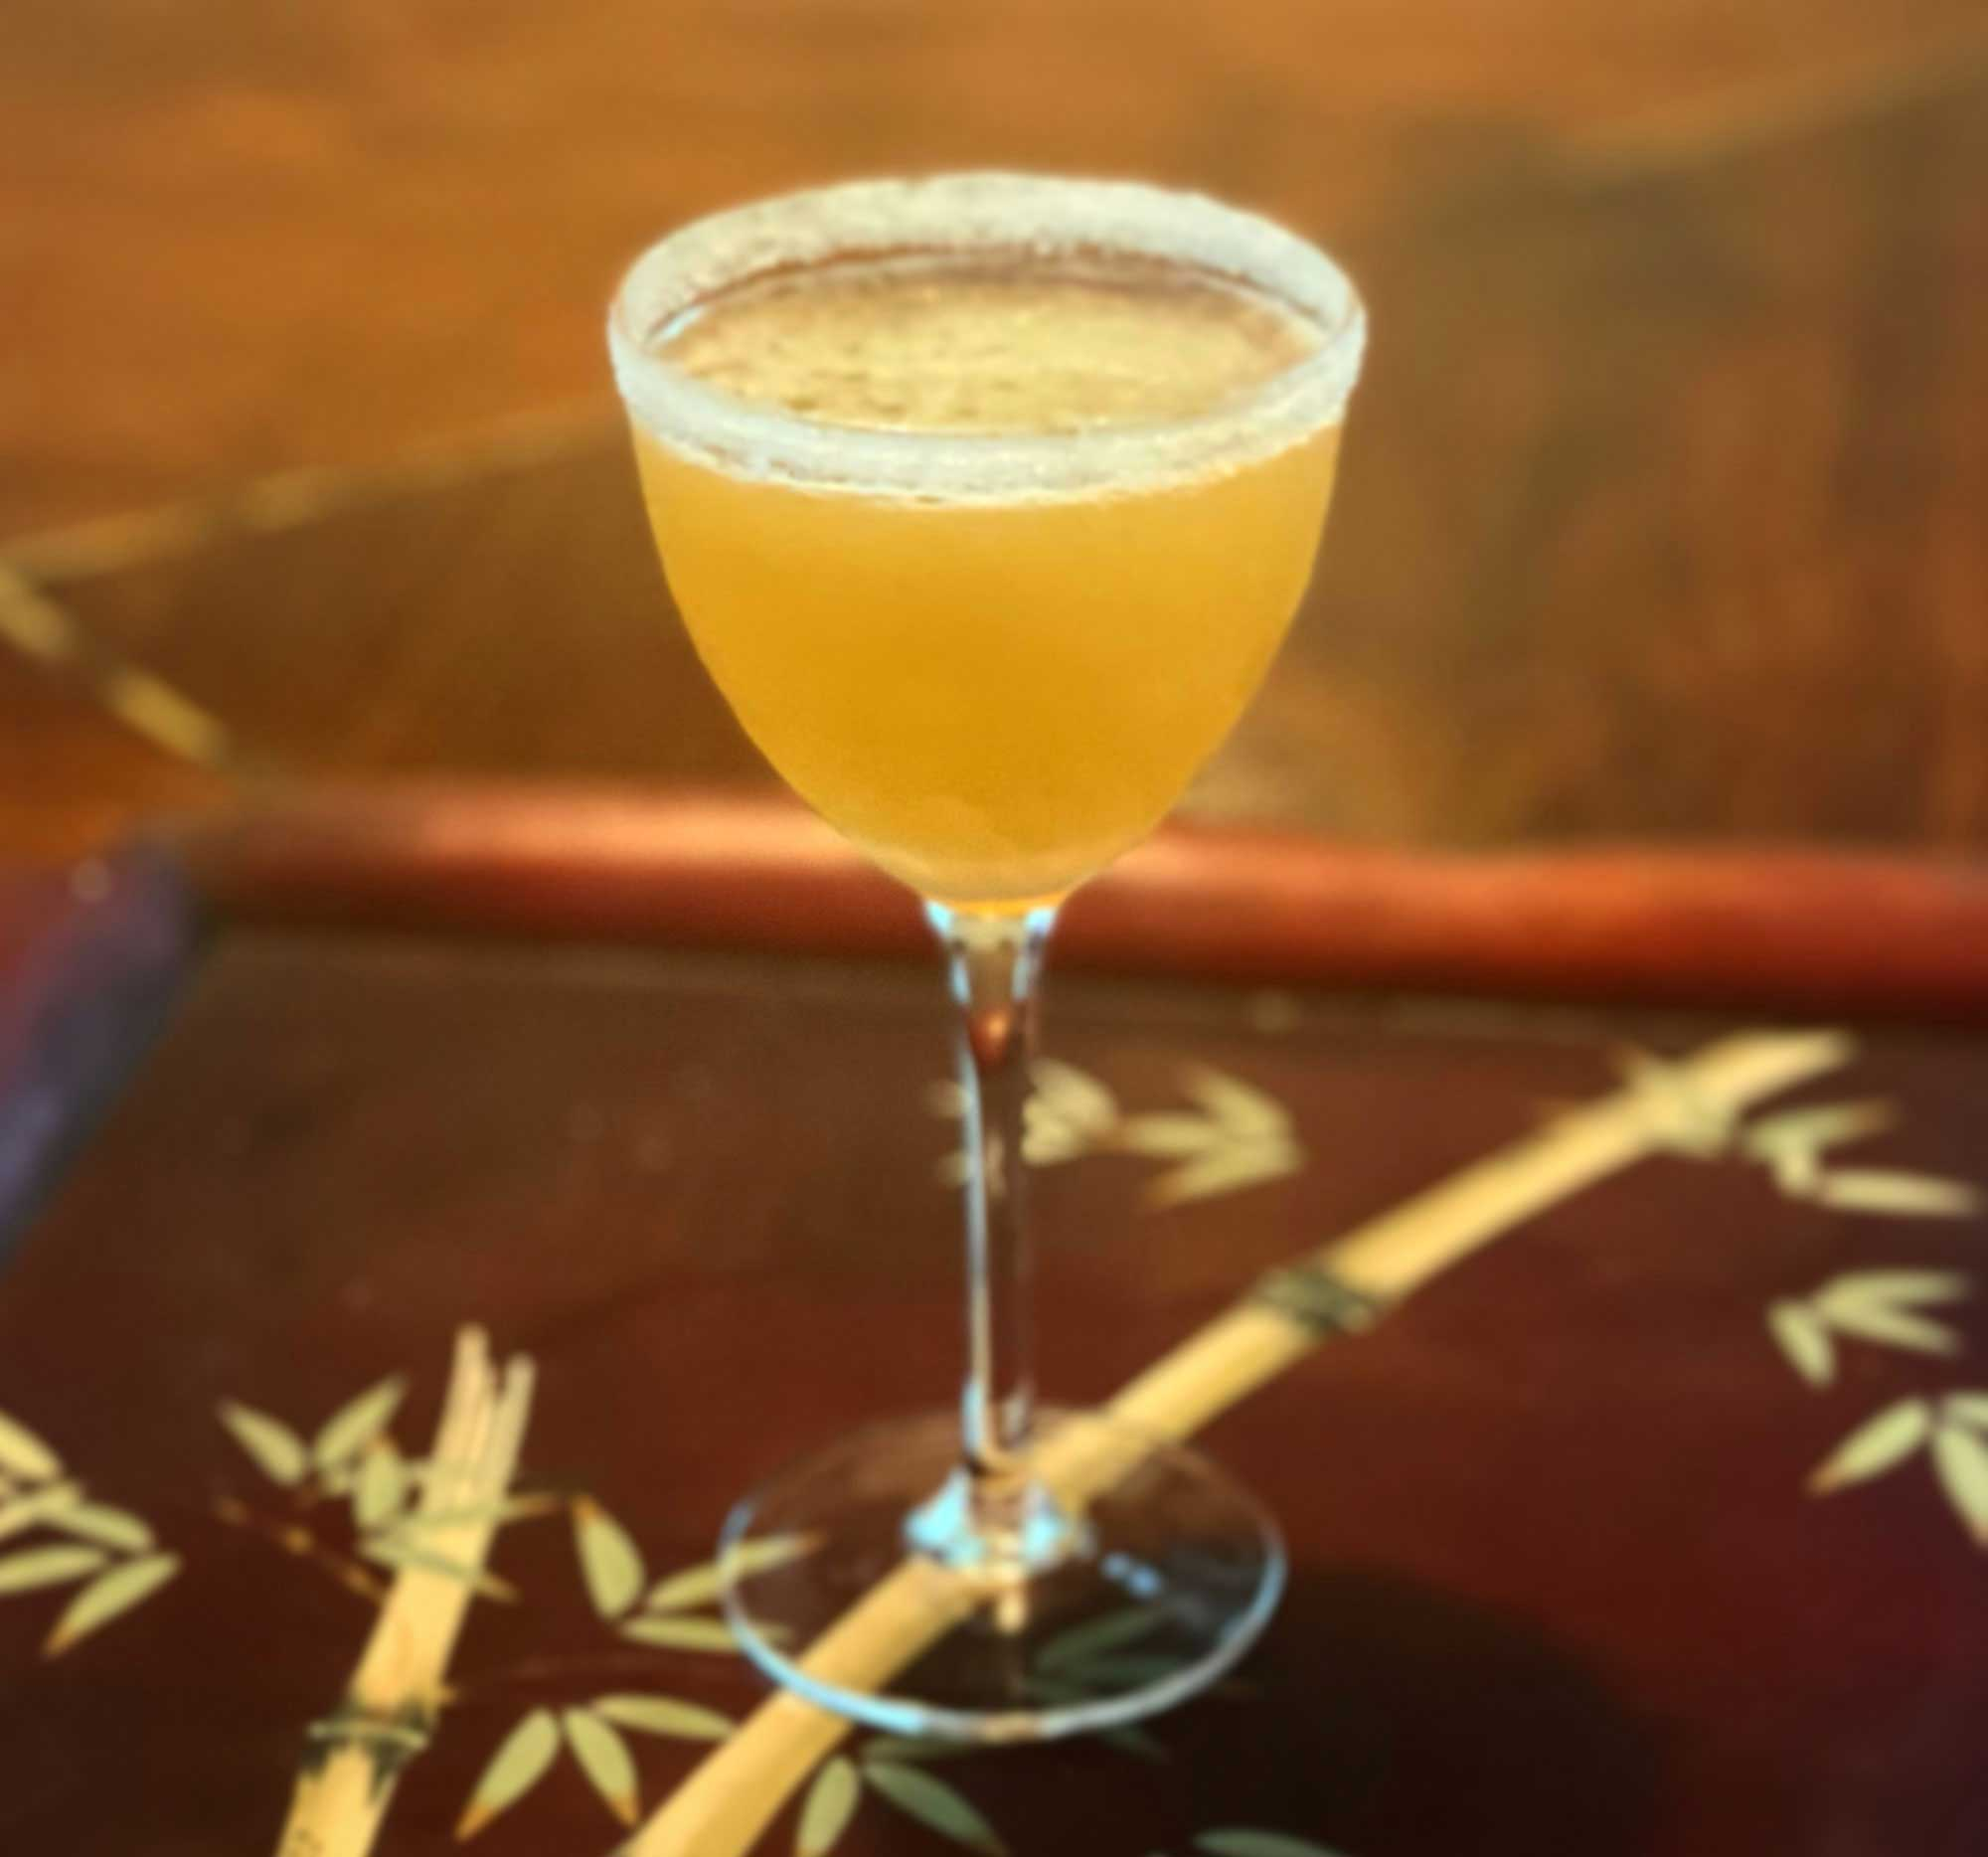 An example of the Almond Blossom Crusta, the mixed drink (crusta), by Charles Baker, 1951, featuring cognac, Hayman's London Dry Gin, lime juice, and orgeat; photo by Thierry Morpurgo